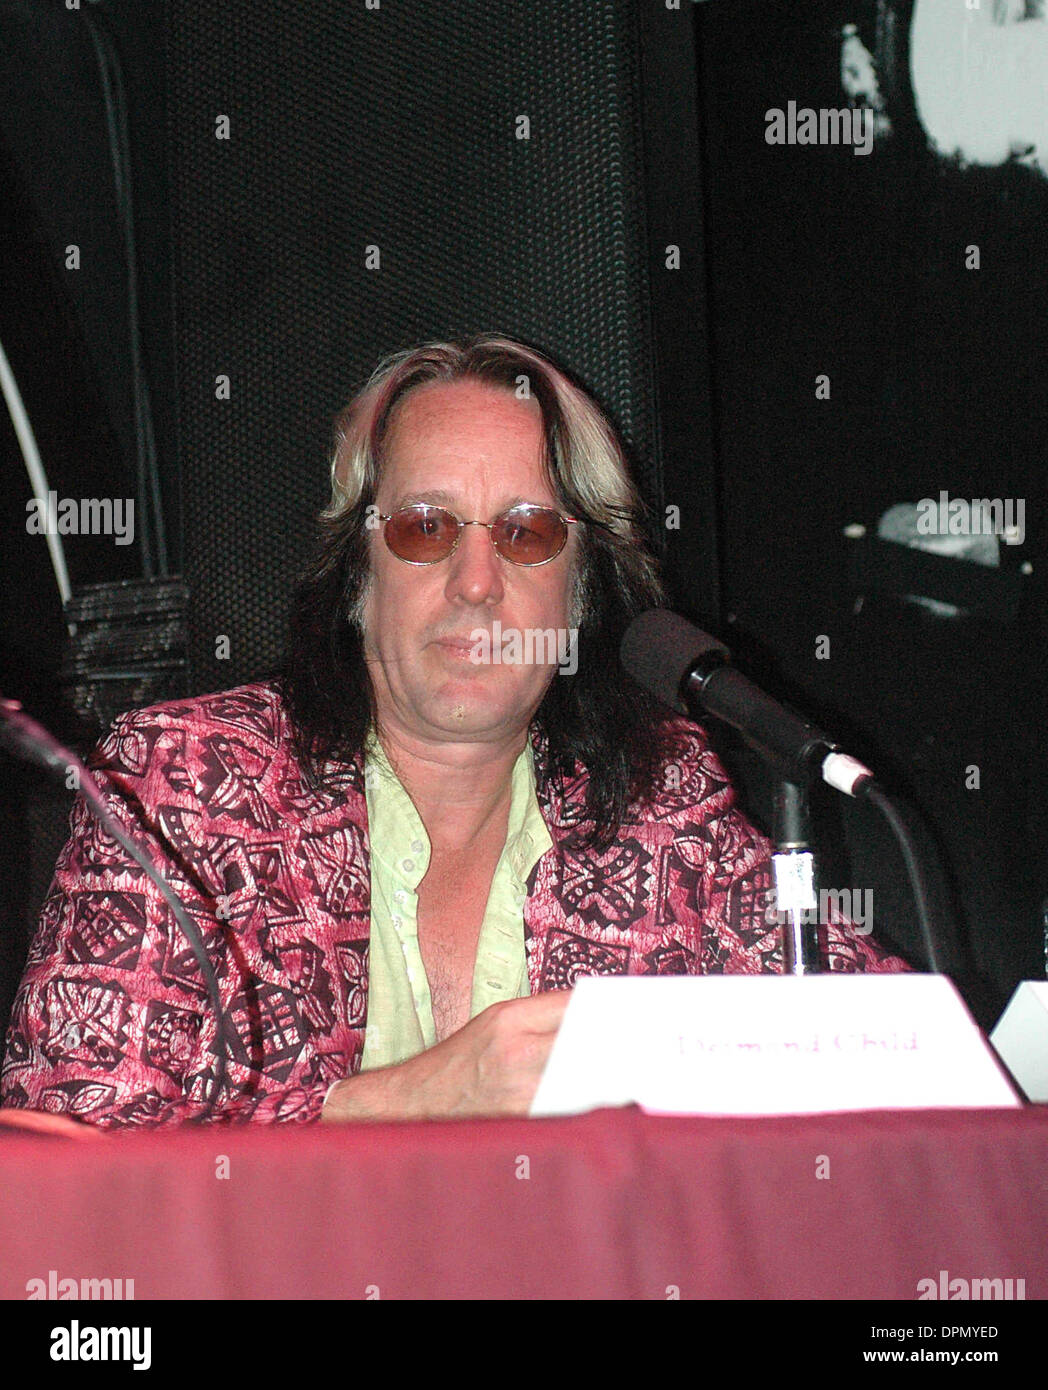 July 31, 2006 - K49170KR.VIRGIN RECORDS RECORDING ARTIST, MEATLOAF, ANNOUNCES THE UPCOMING RELEASE OF HIS NEW ALBULM ''BAT OUT OF HELL III'' AT AVALON NIGHTCLUB ALONG WITH A PANEL OF MUSIC ARTIST INVOLVED IN THE ALBULM SIXTH AVENUE 07-31-2006. KEN RUMMENTS-   TODD RUNDGREN(Credit Image: © Globe Photos/ZUMAPRESS.com) - Stock Image